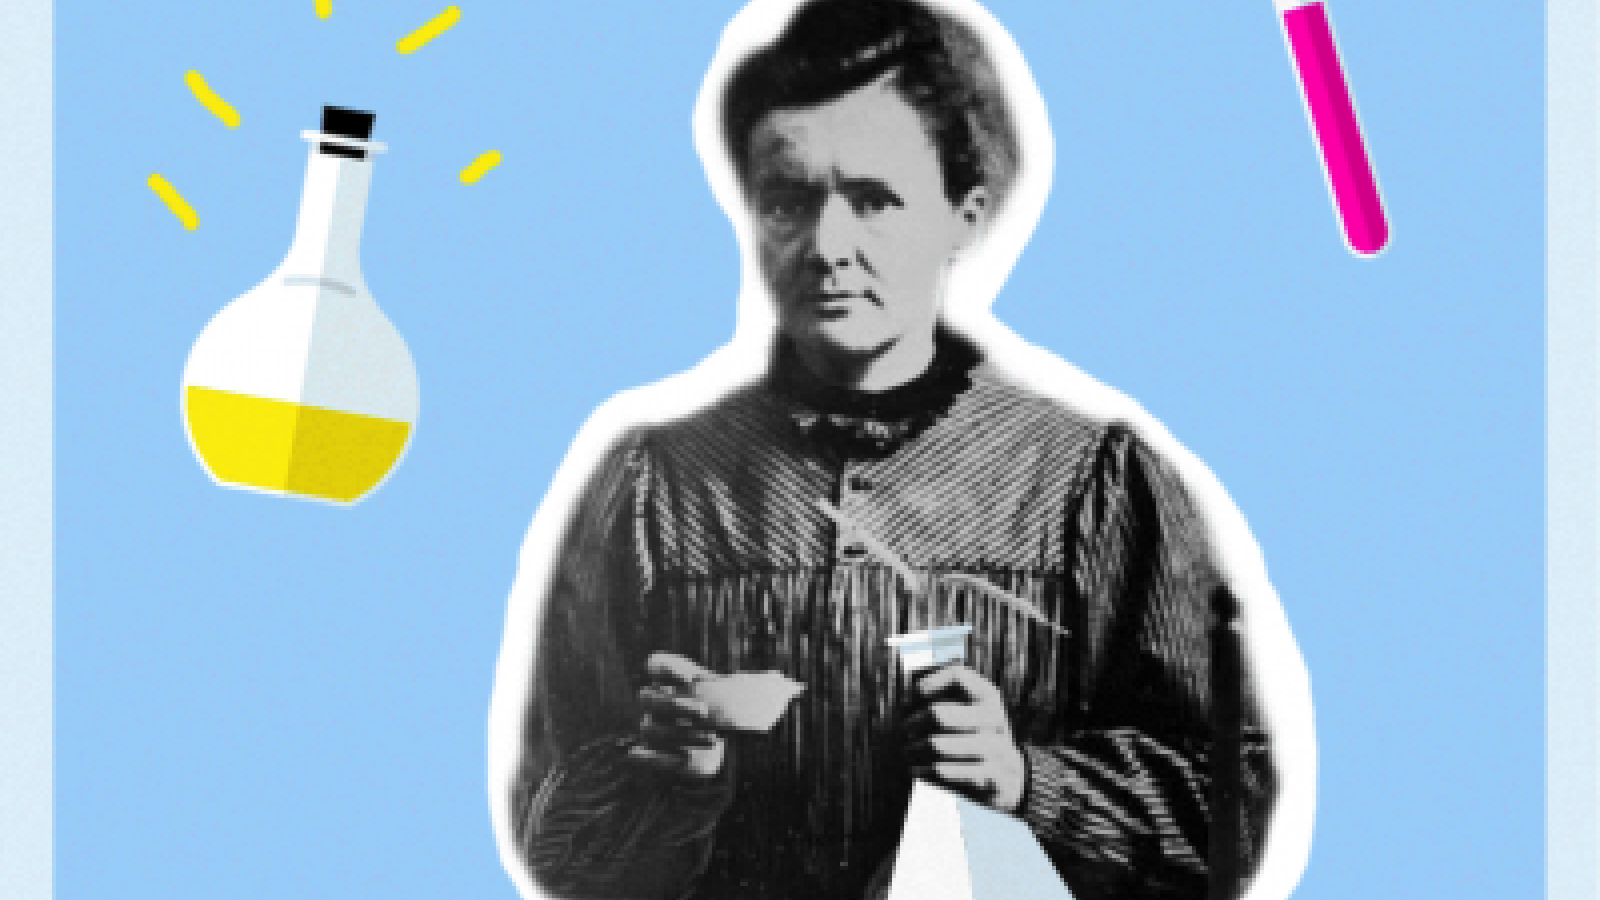 100 000 researchers supported through EU's Marie Skłodowska-Curie Actions